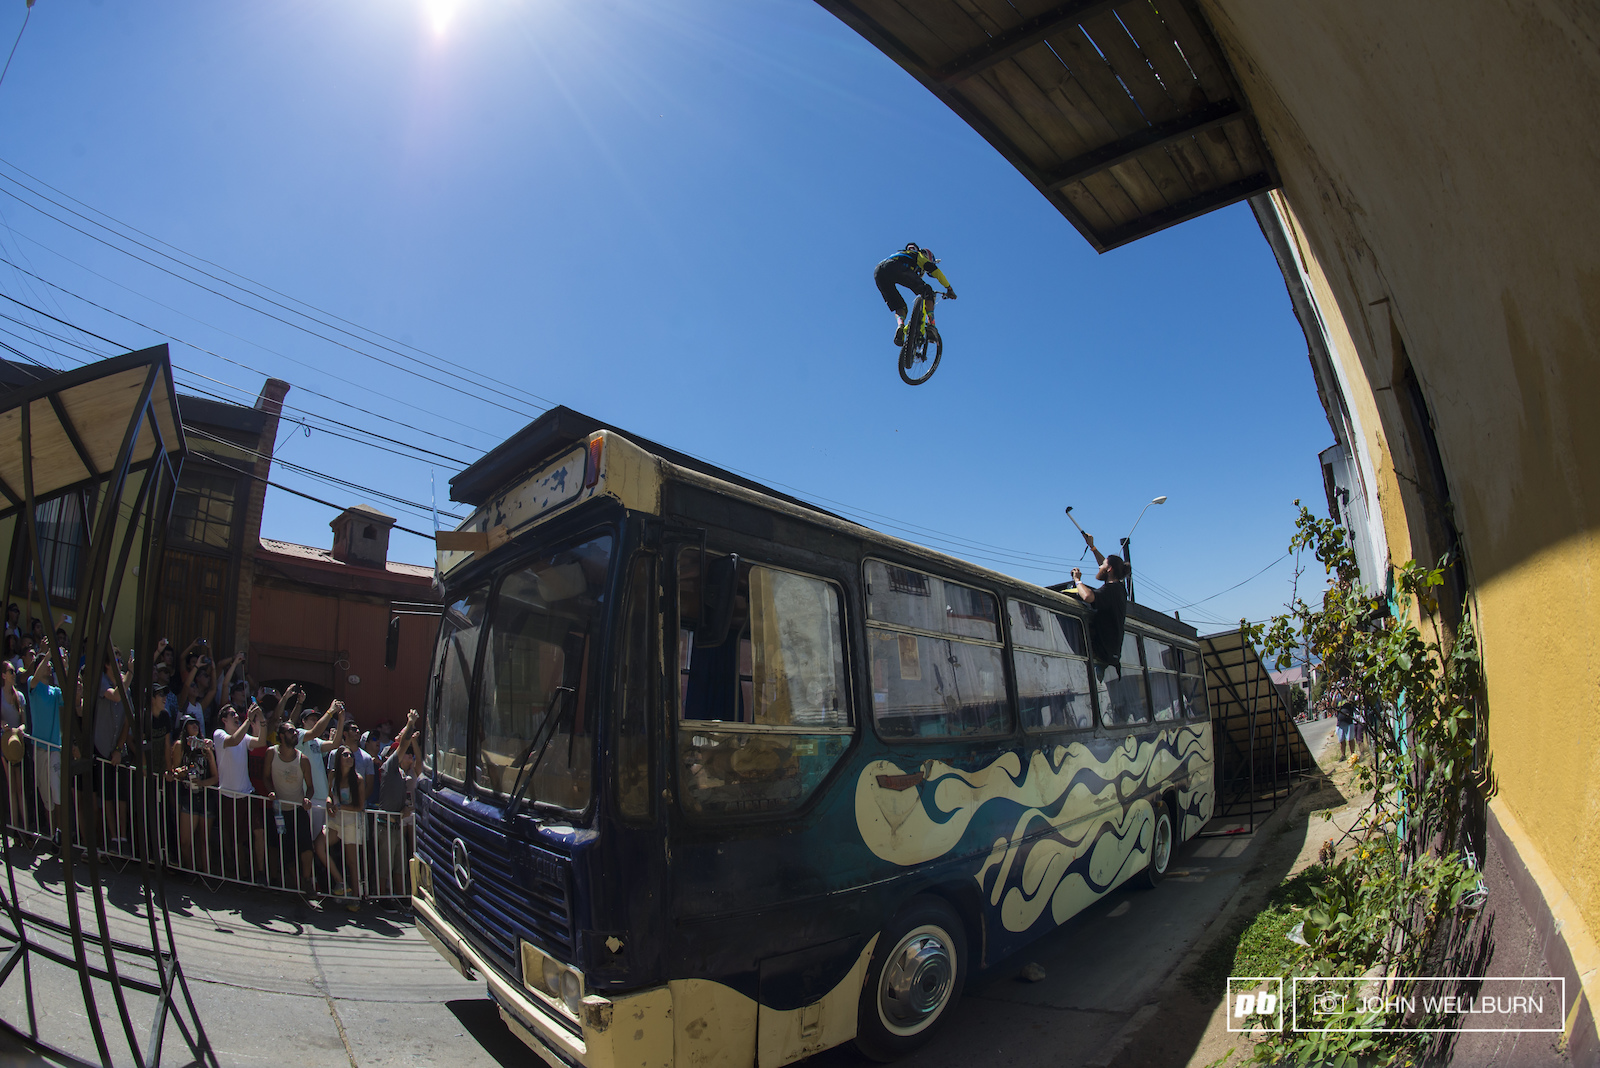 Felipe Argurto is one of the fastest riders in Chile right now. He s young and on top of his game. He had the biggest air and best style by far on the bus gap. Here he sends his way into the top ten.